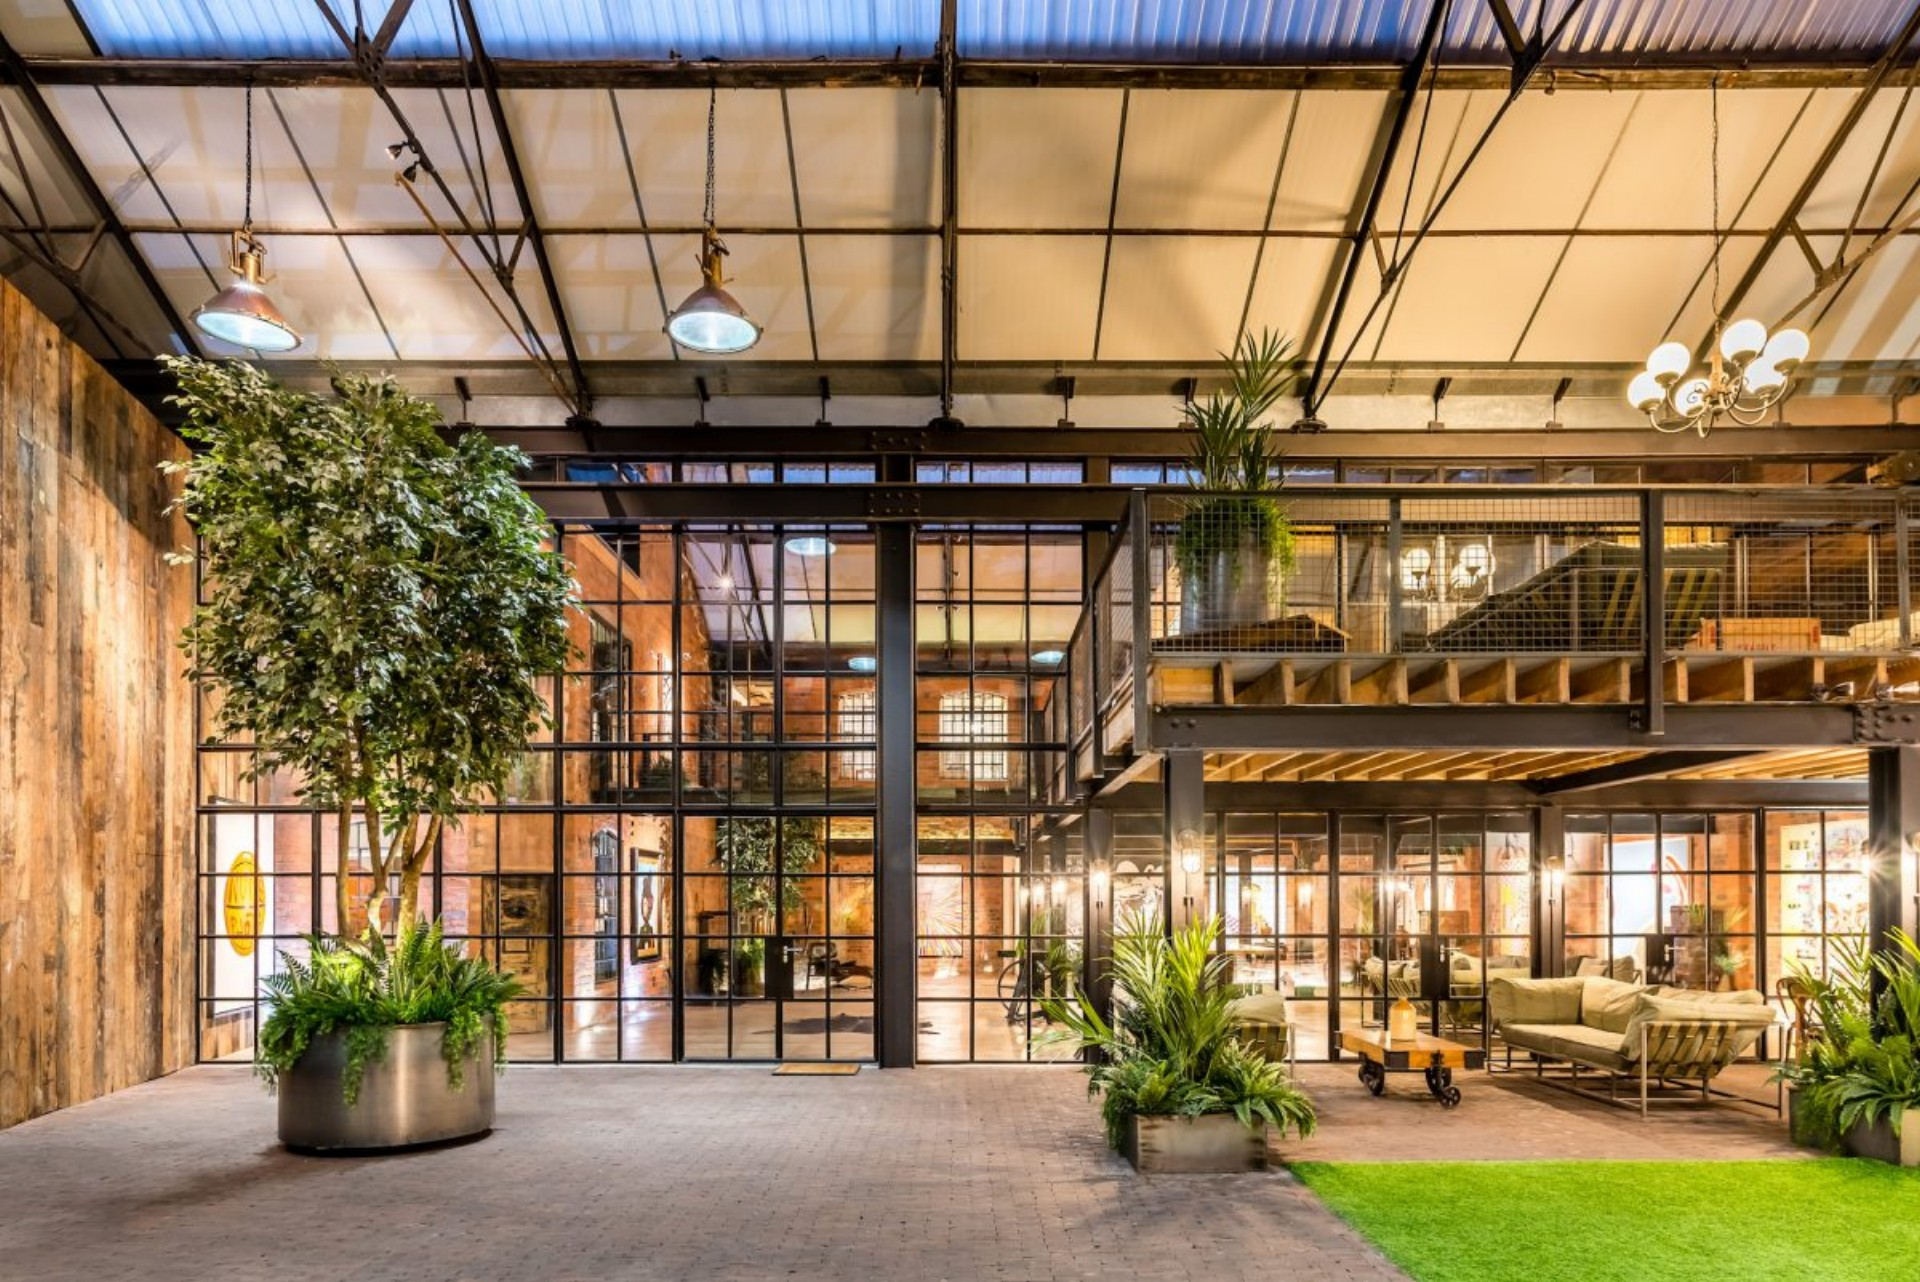 BPN Architects' The Compound in Birmingham: from factory to creative space